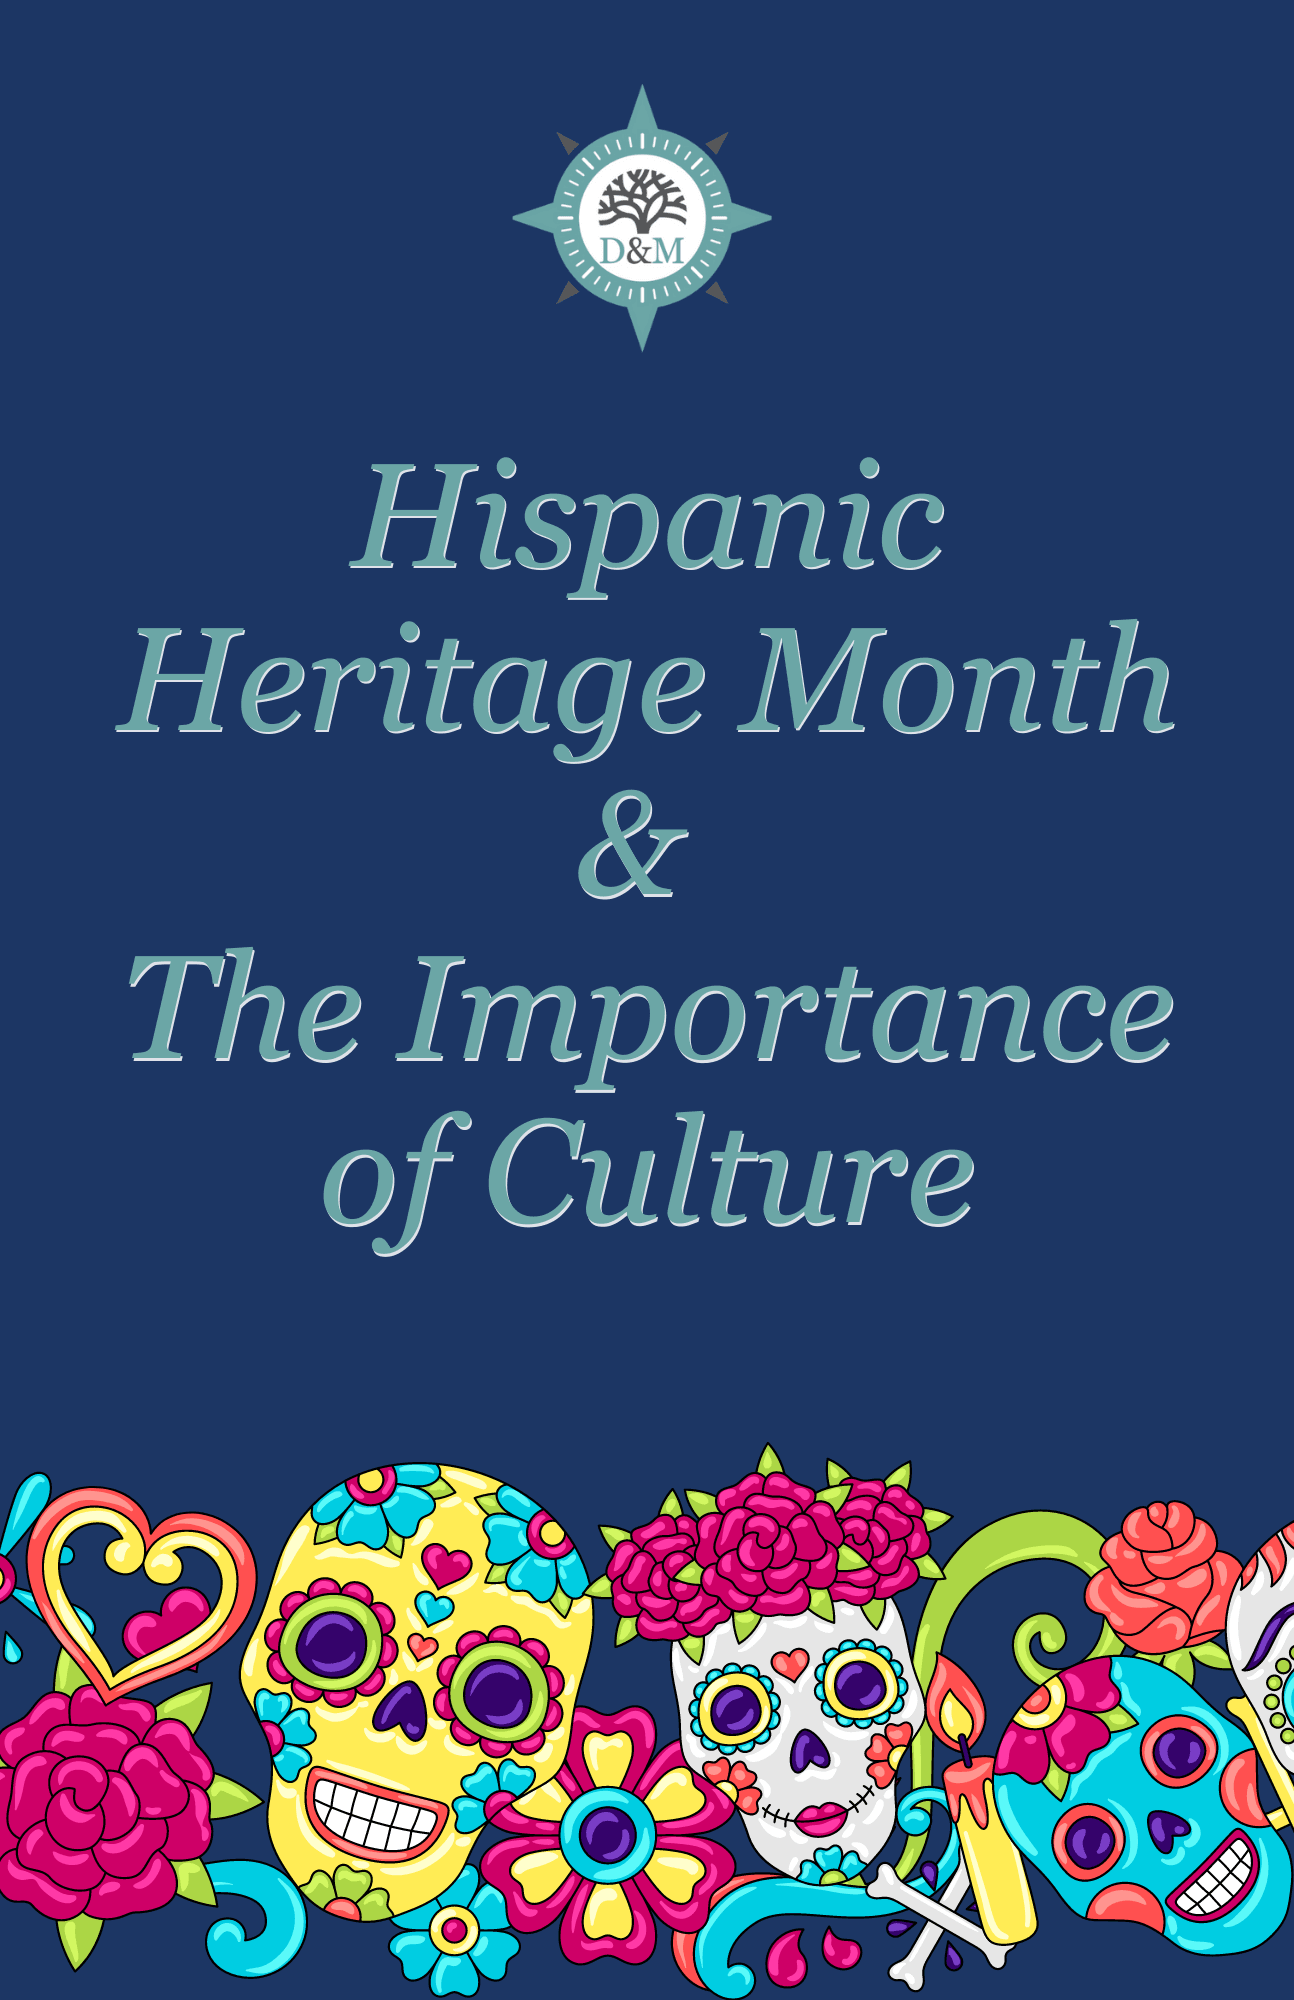 Hispanic Heritage Month & The Importance of Culture